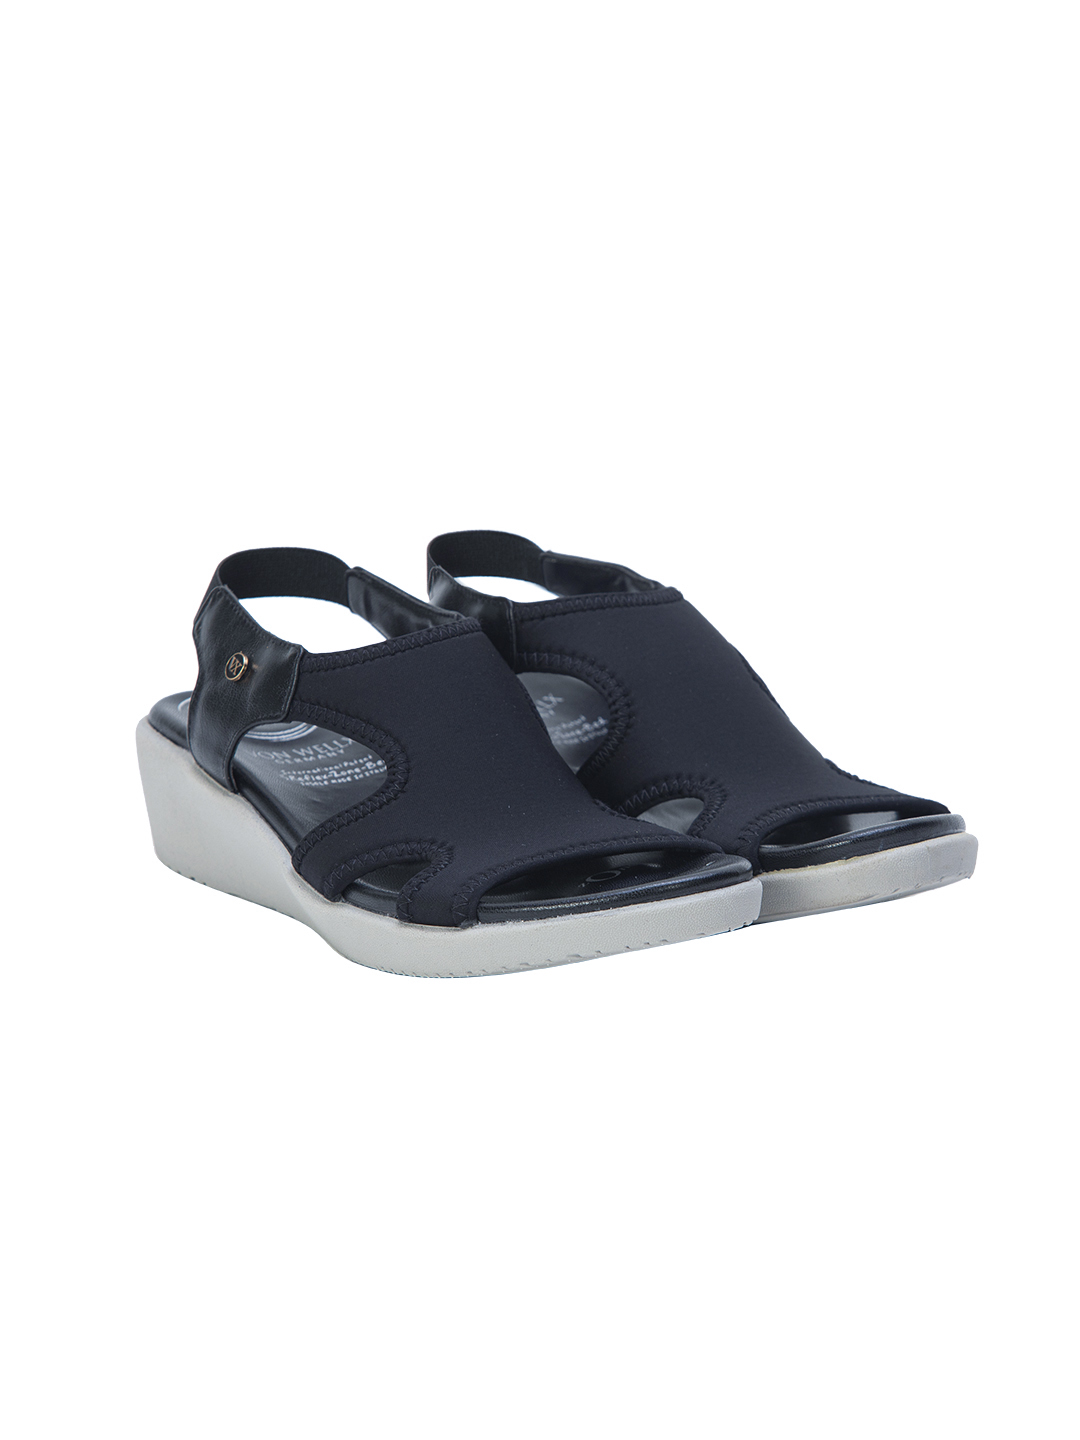 Buy Von Wellx Germany Comfort Shirley Black Sandals Online in Sri Lanka